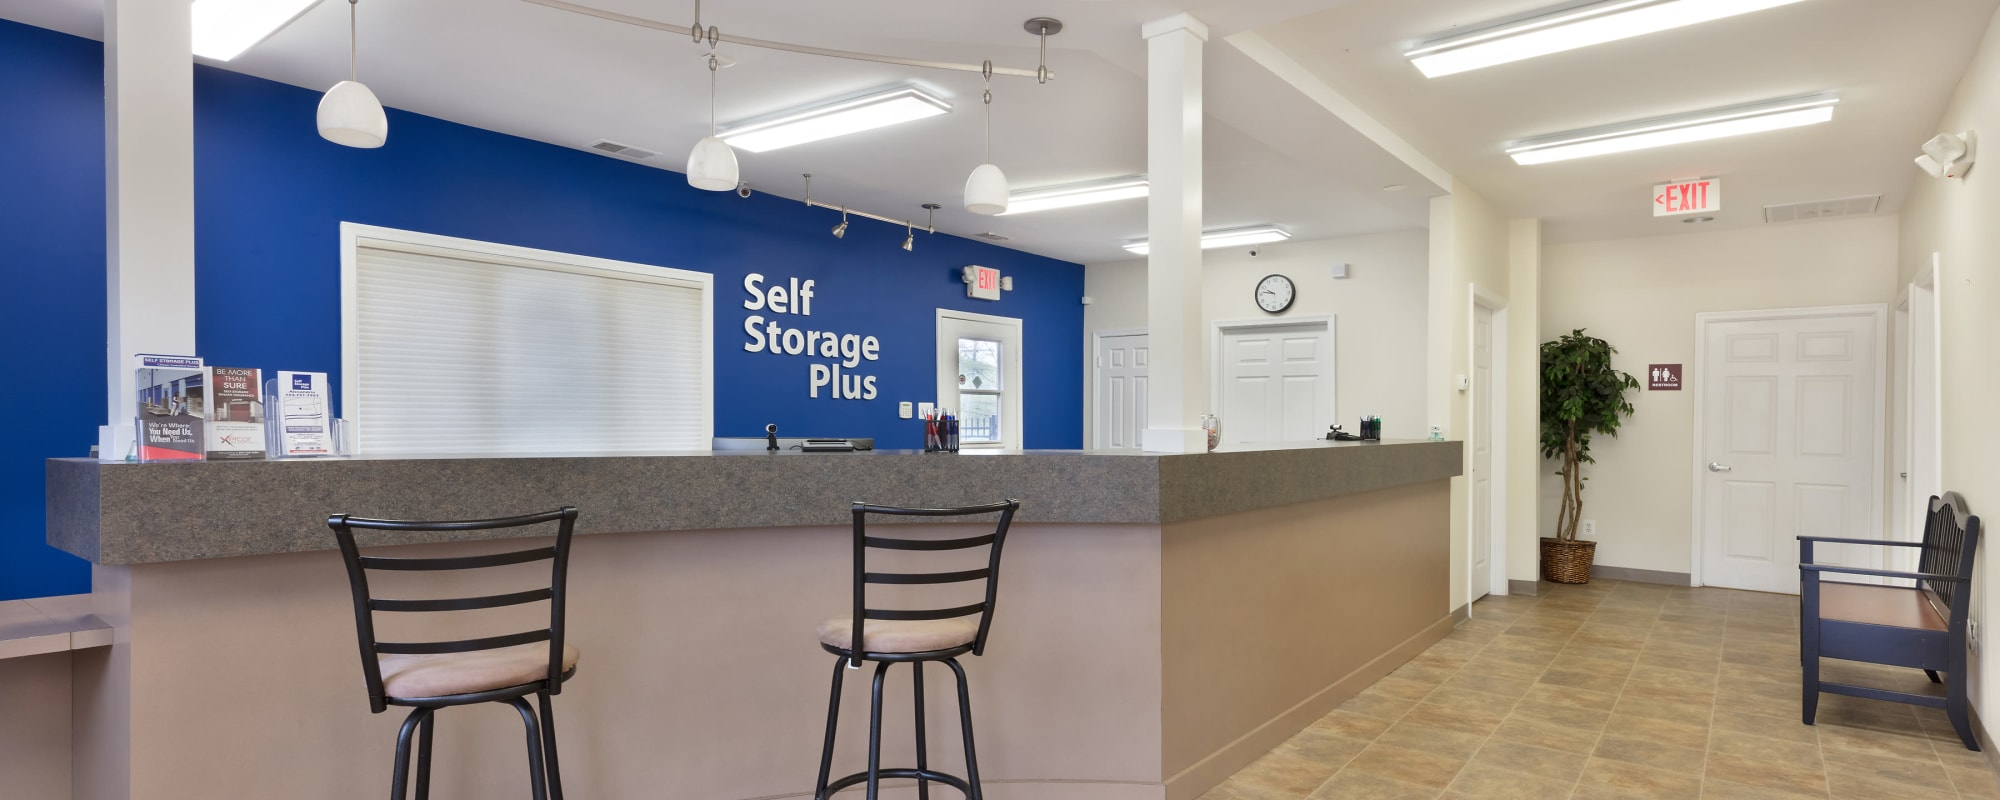 Leasing office at Self Storage Plus in Alexandria, VA